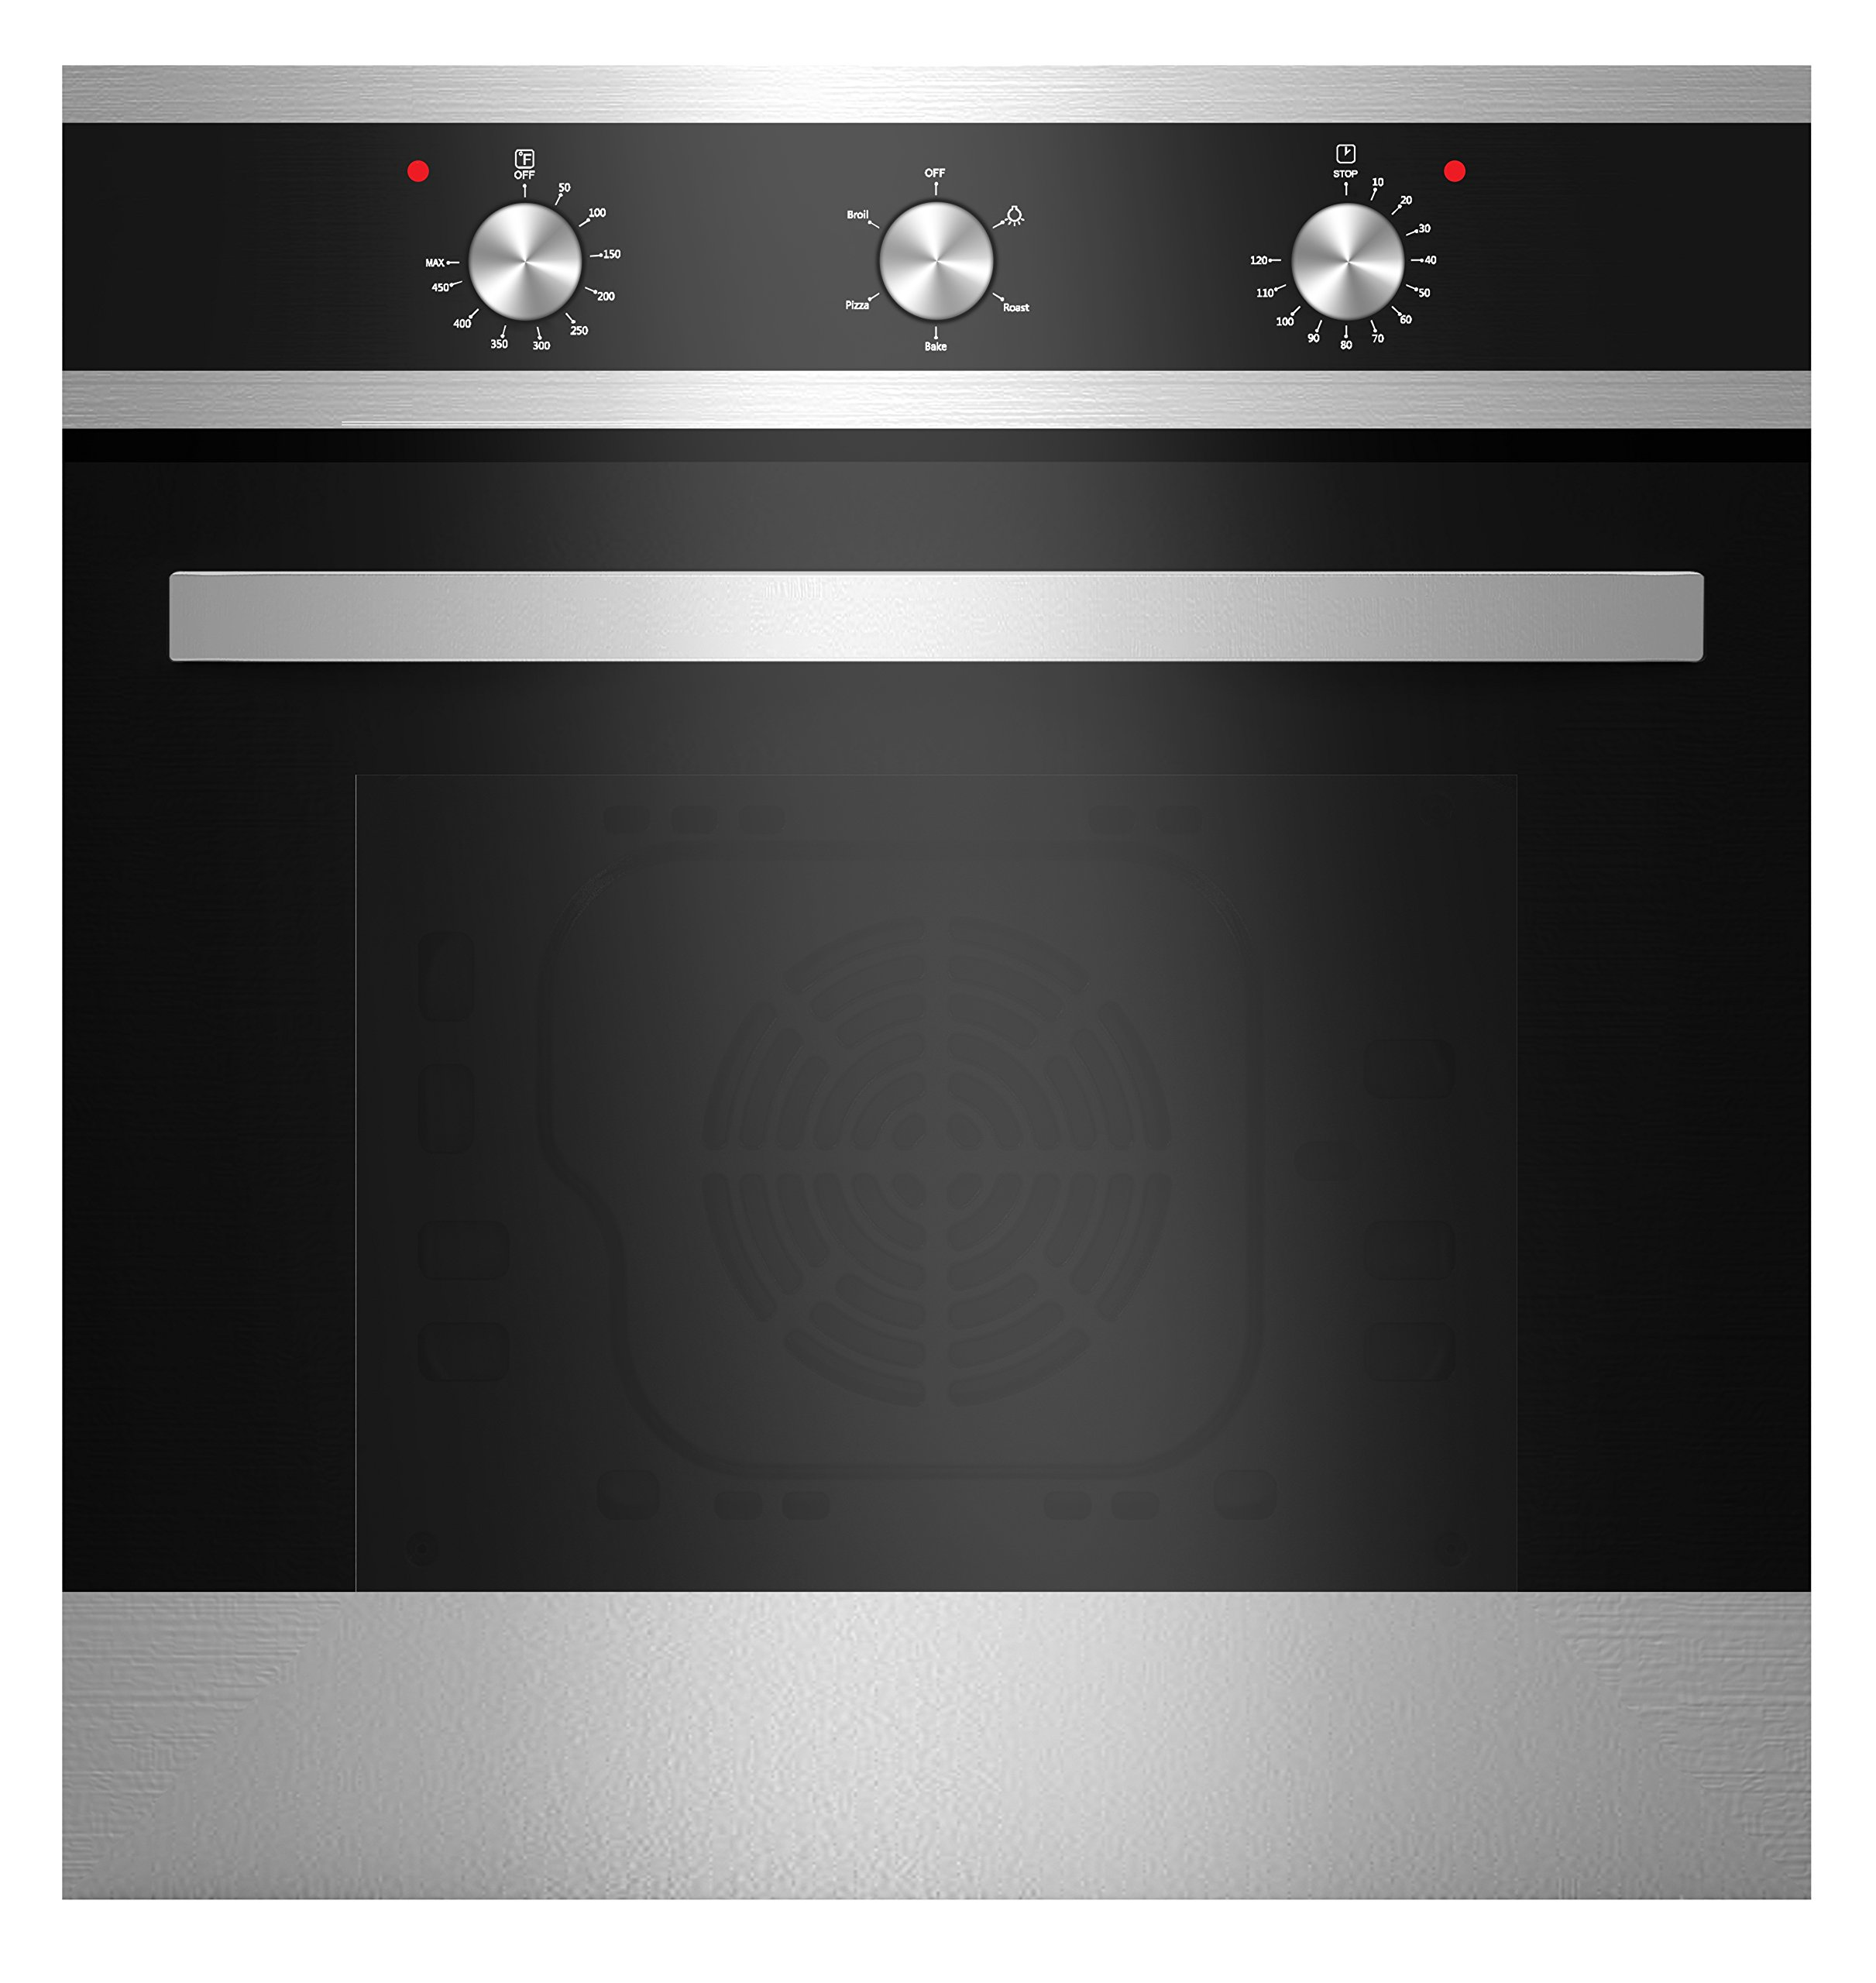 Empava KQP65A-16-220V Tempered Glass Electric Built-In Single Wall Oven, 24'' Black/Silver by Empava